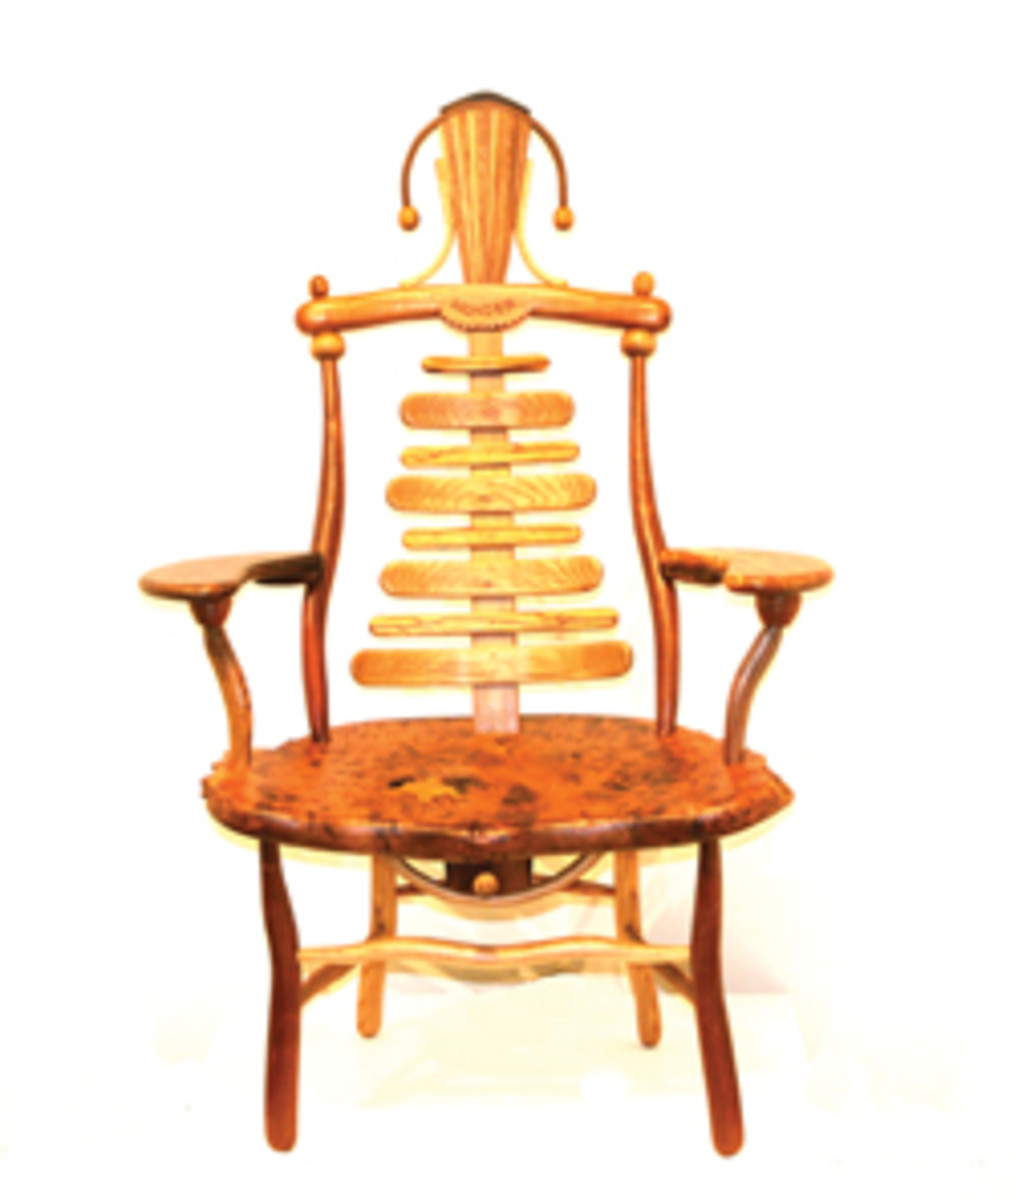 Chair by Michelle Holzapfel.